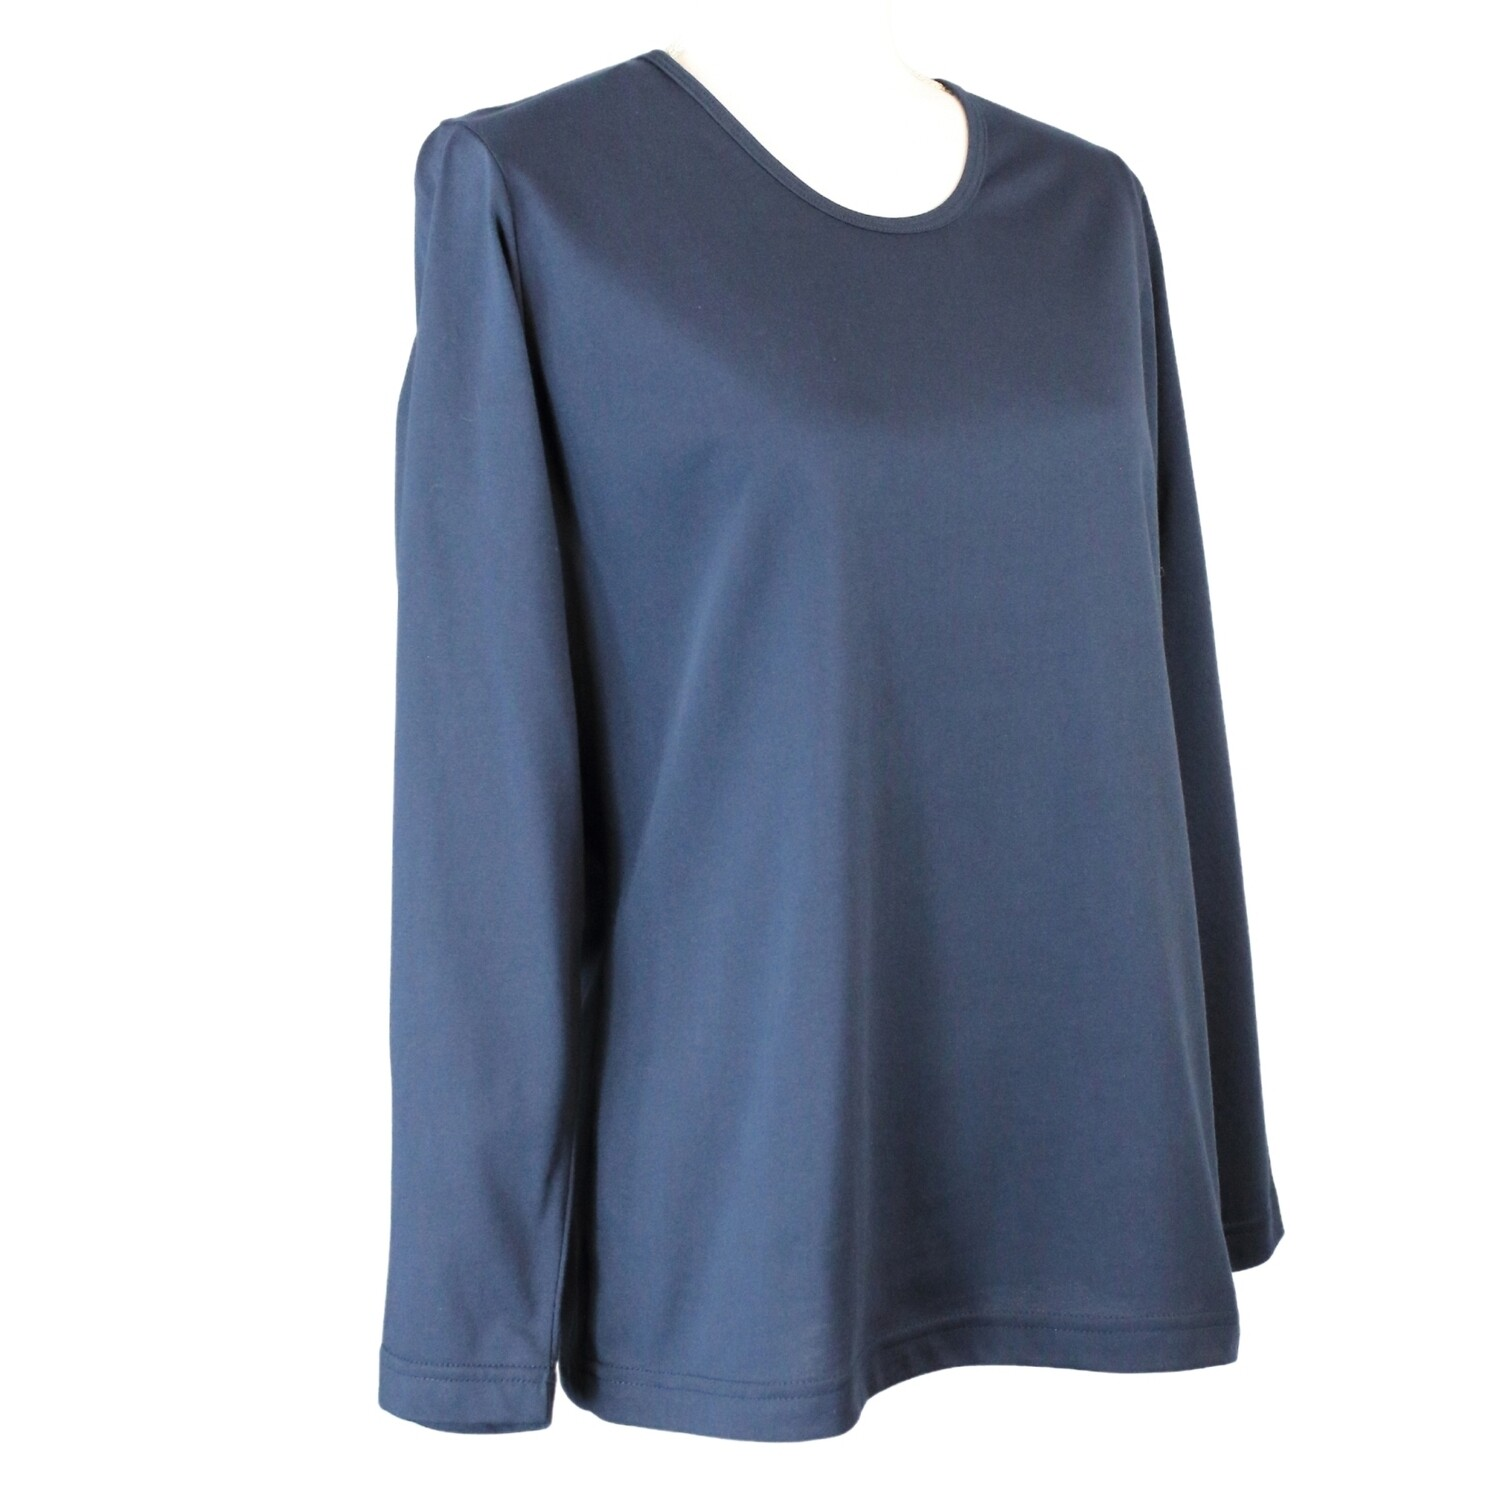 Soft Pure Cotton Long Sleeve Navy Tee